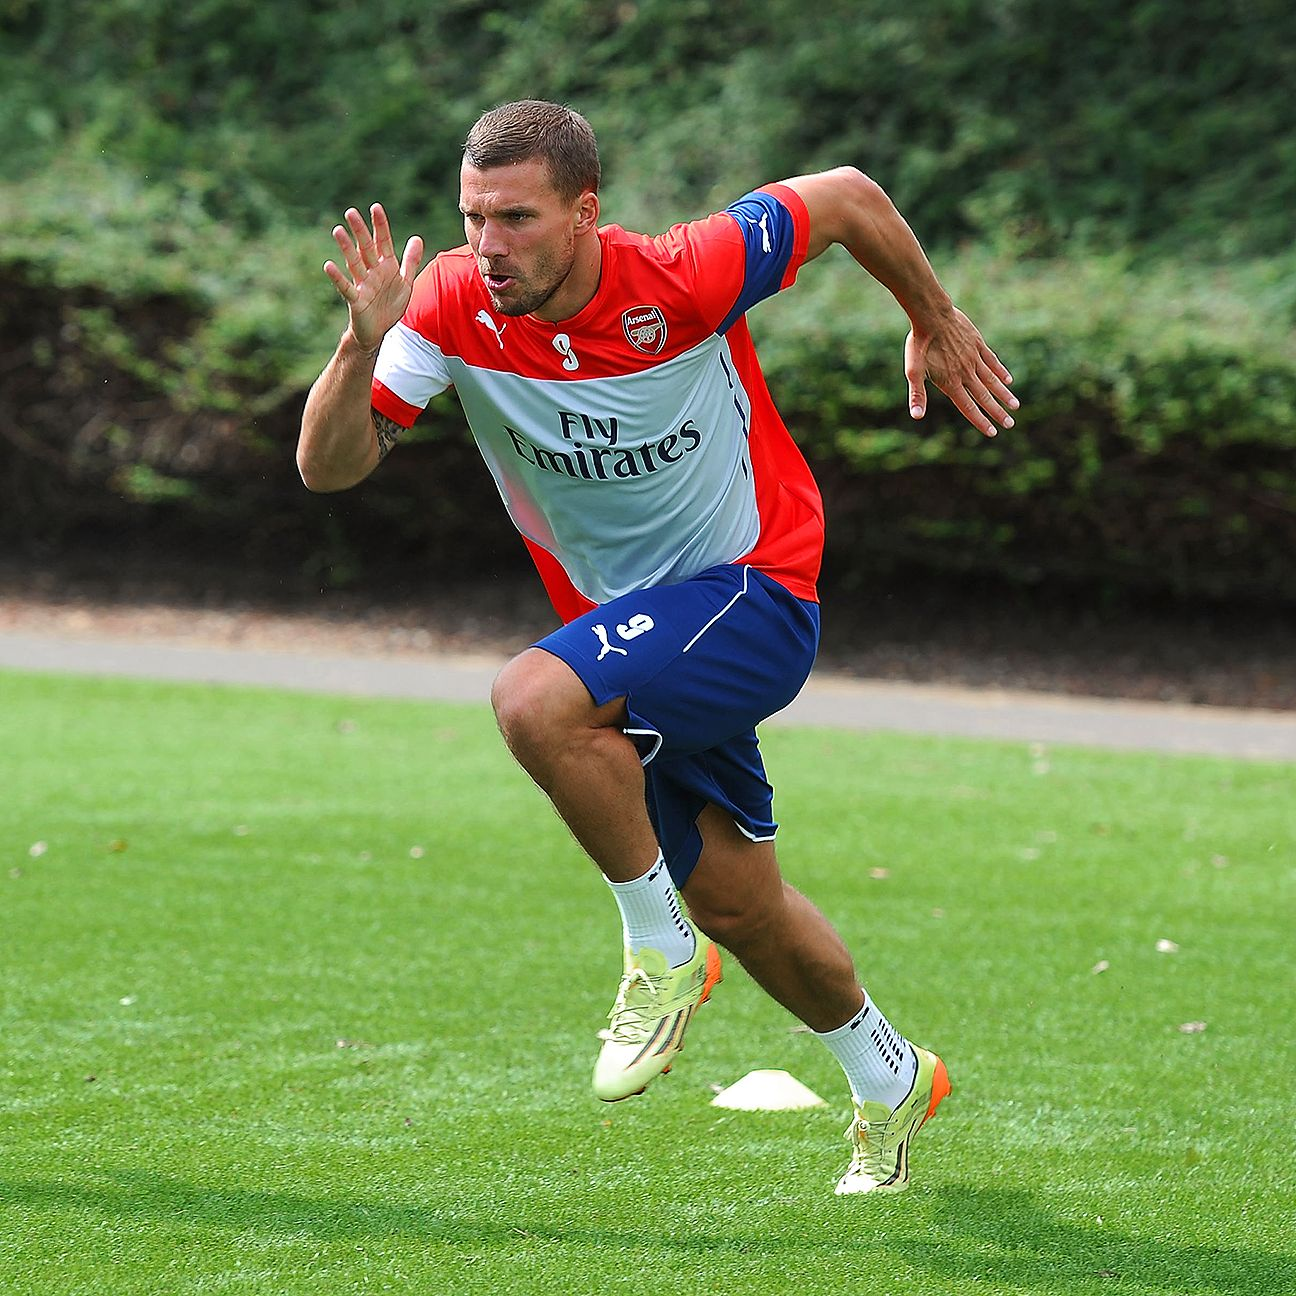 With the arrival of Alexis Sanchez and the emergence of Joel Campbell, it may be difficult for Lukas Podolski to keep his spot at Arsenal.